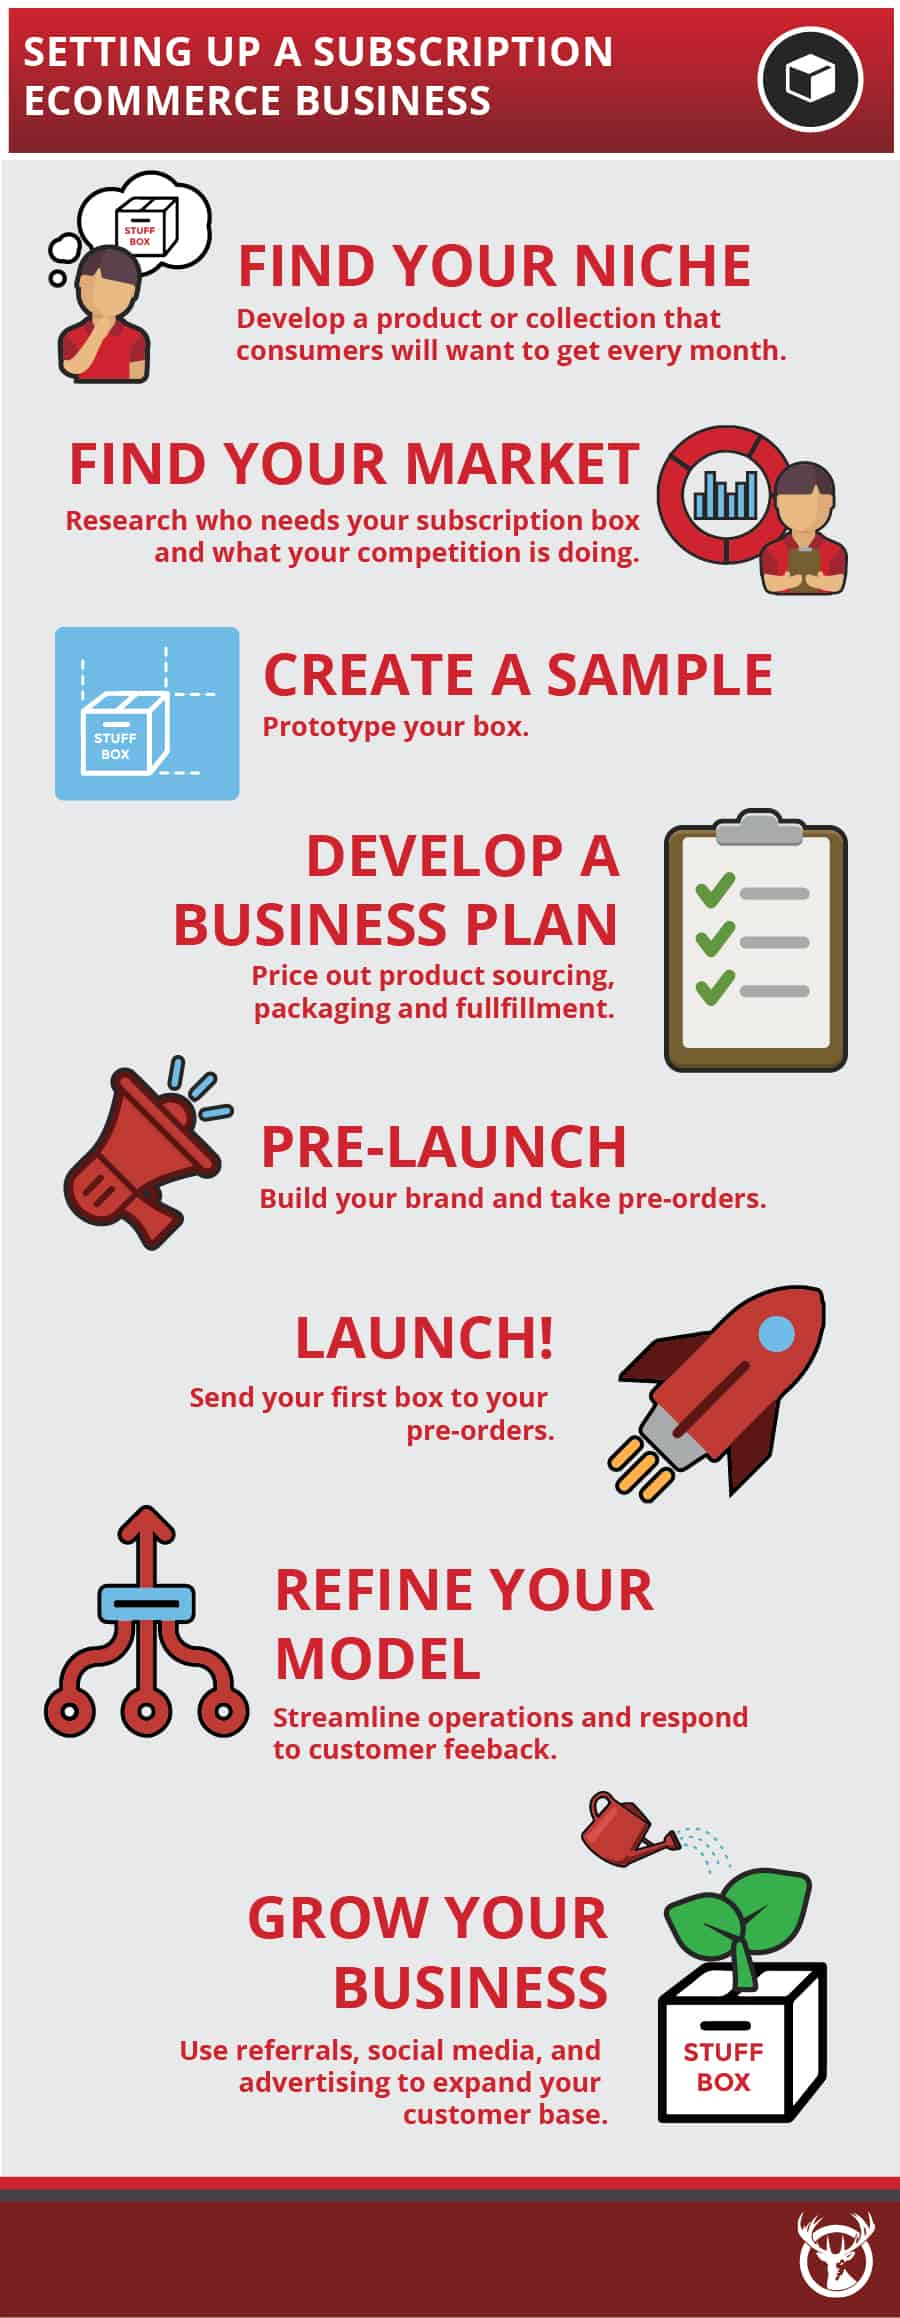 Subscription eCommerce Business steps to set up